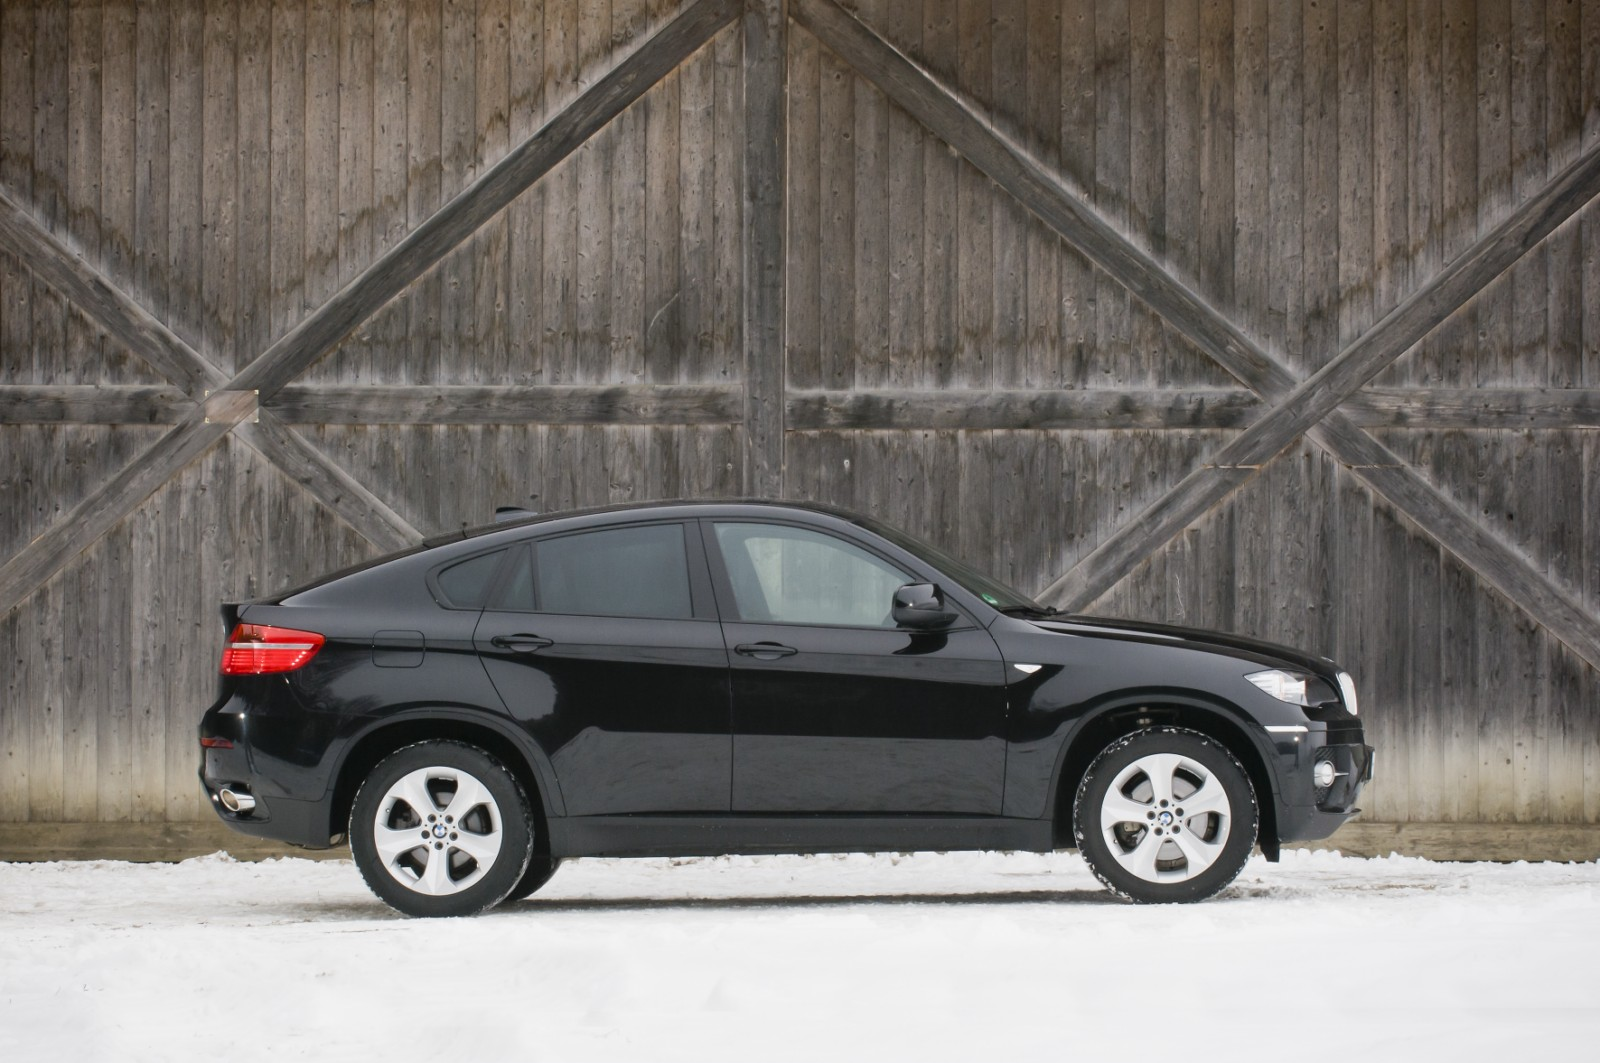 Bmw X6 User Manual Ebook 1990 Eagle Laser Plymouth Talon Electrical System 8211 Relay Control And Sensor Array X5 Present A New Range Of Special Options For Spring